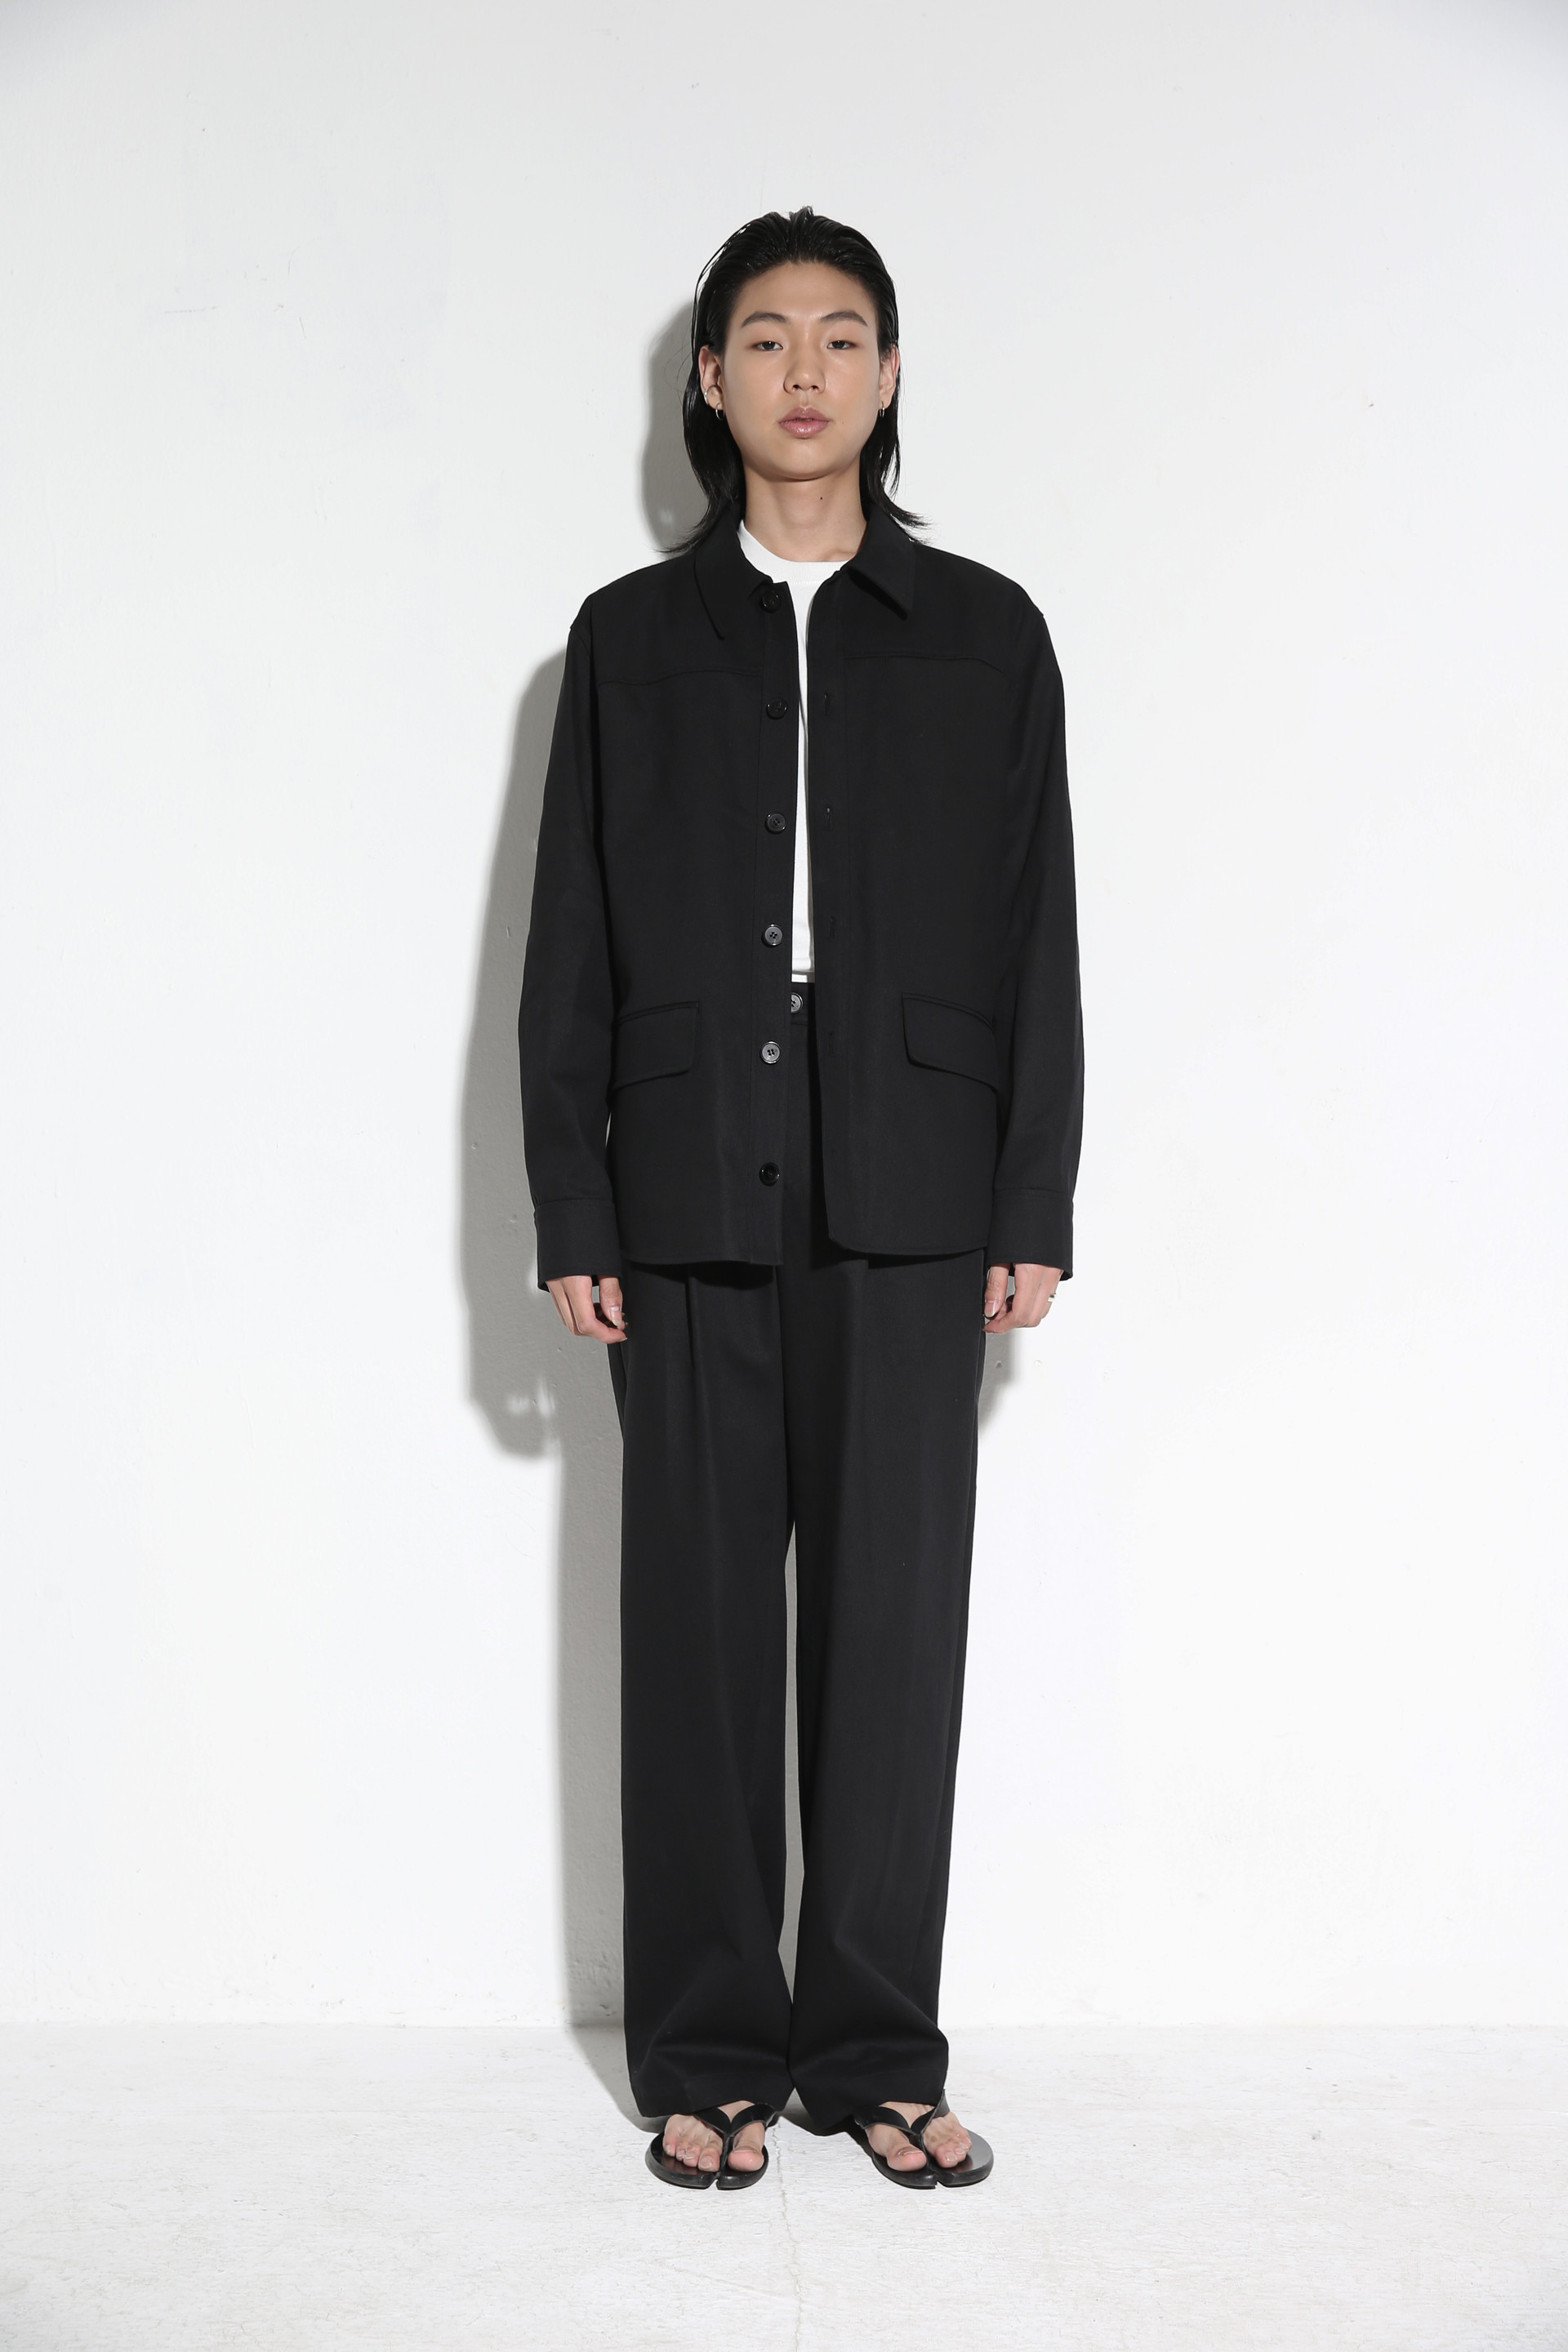 Look 6 - SS21